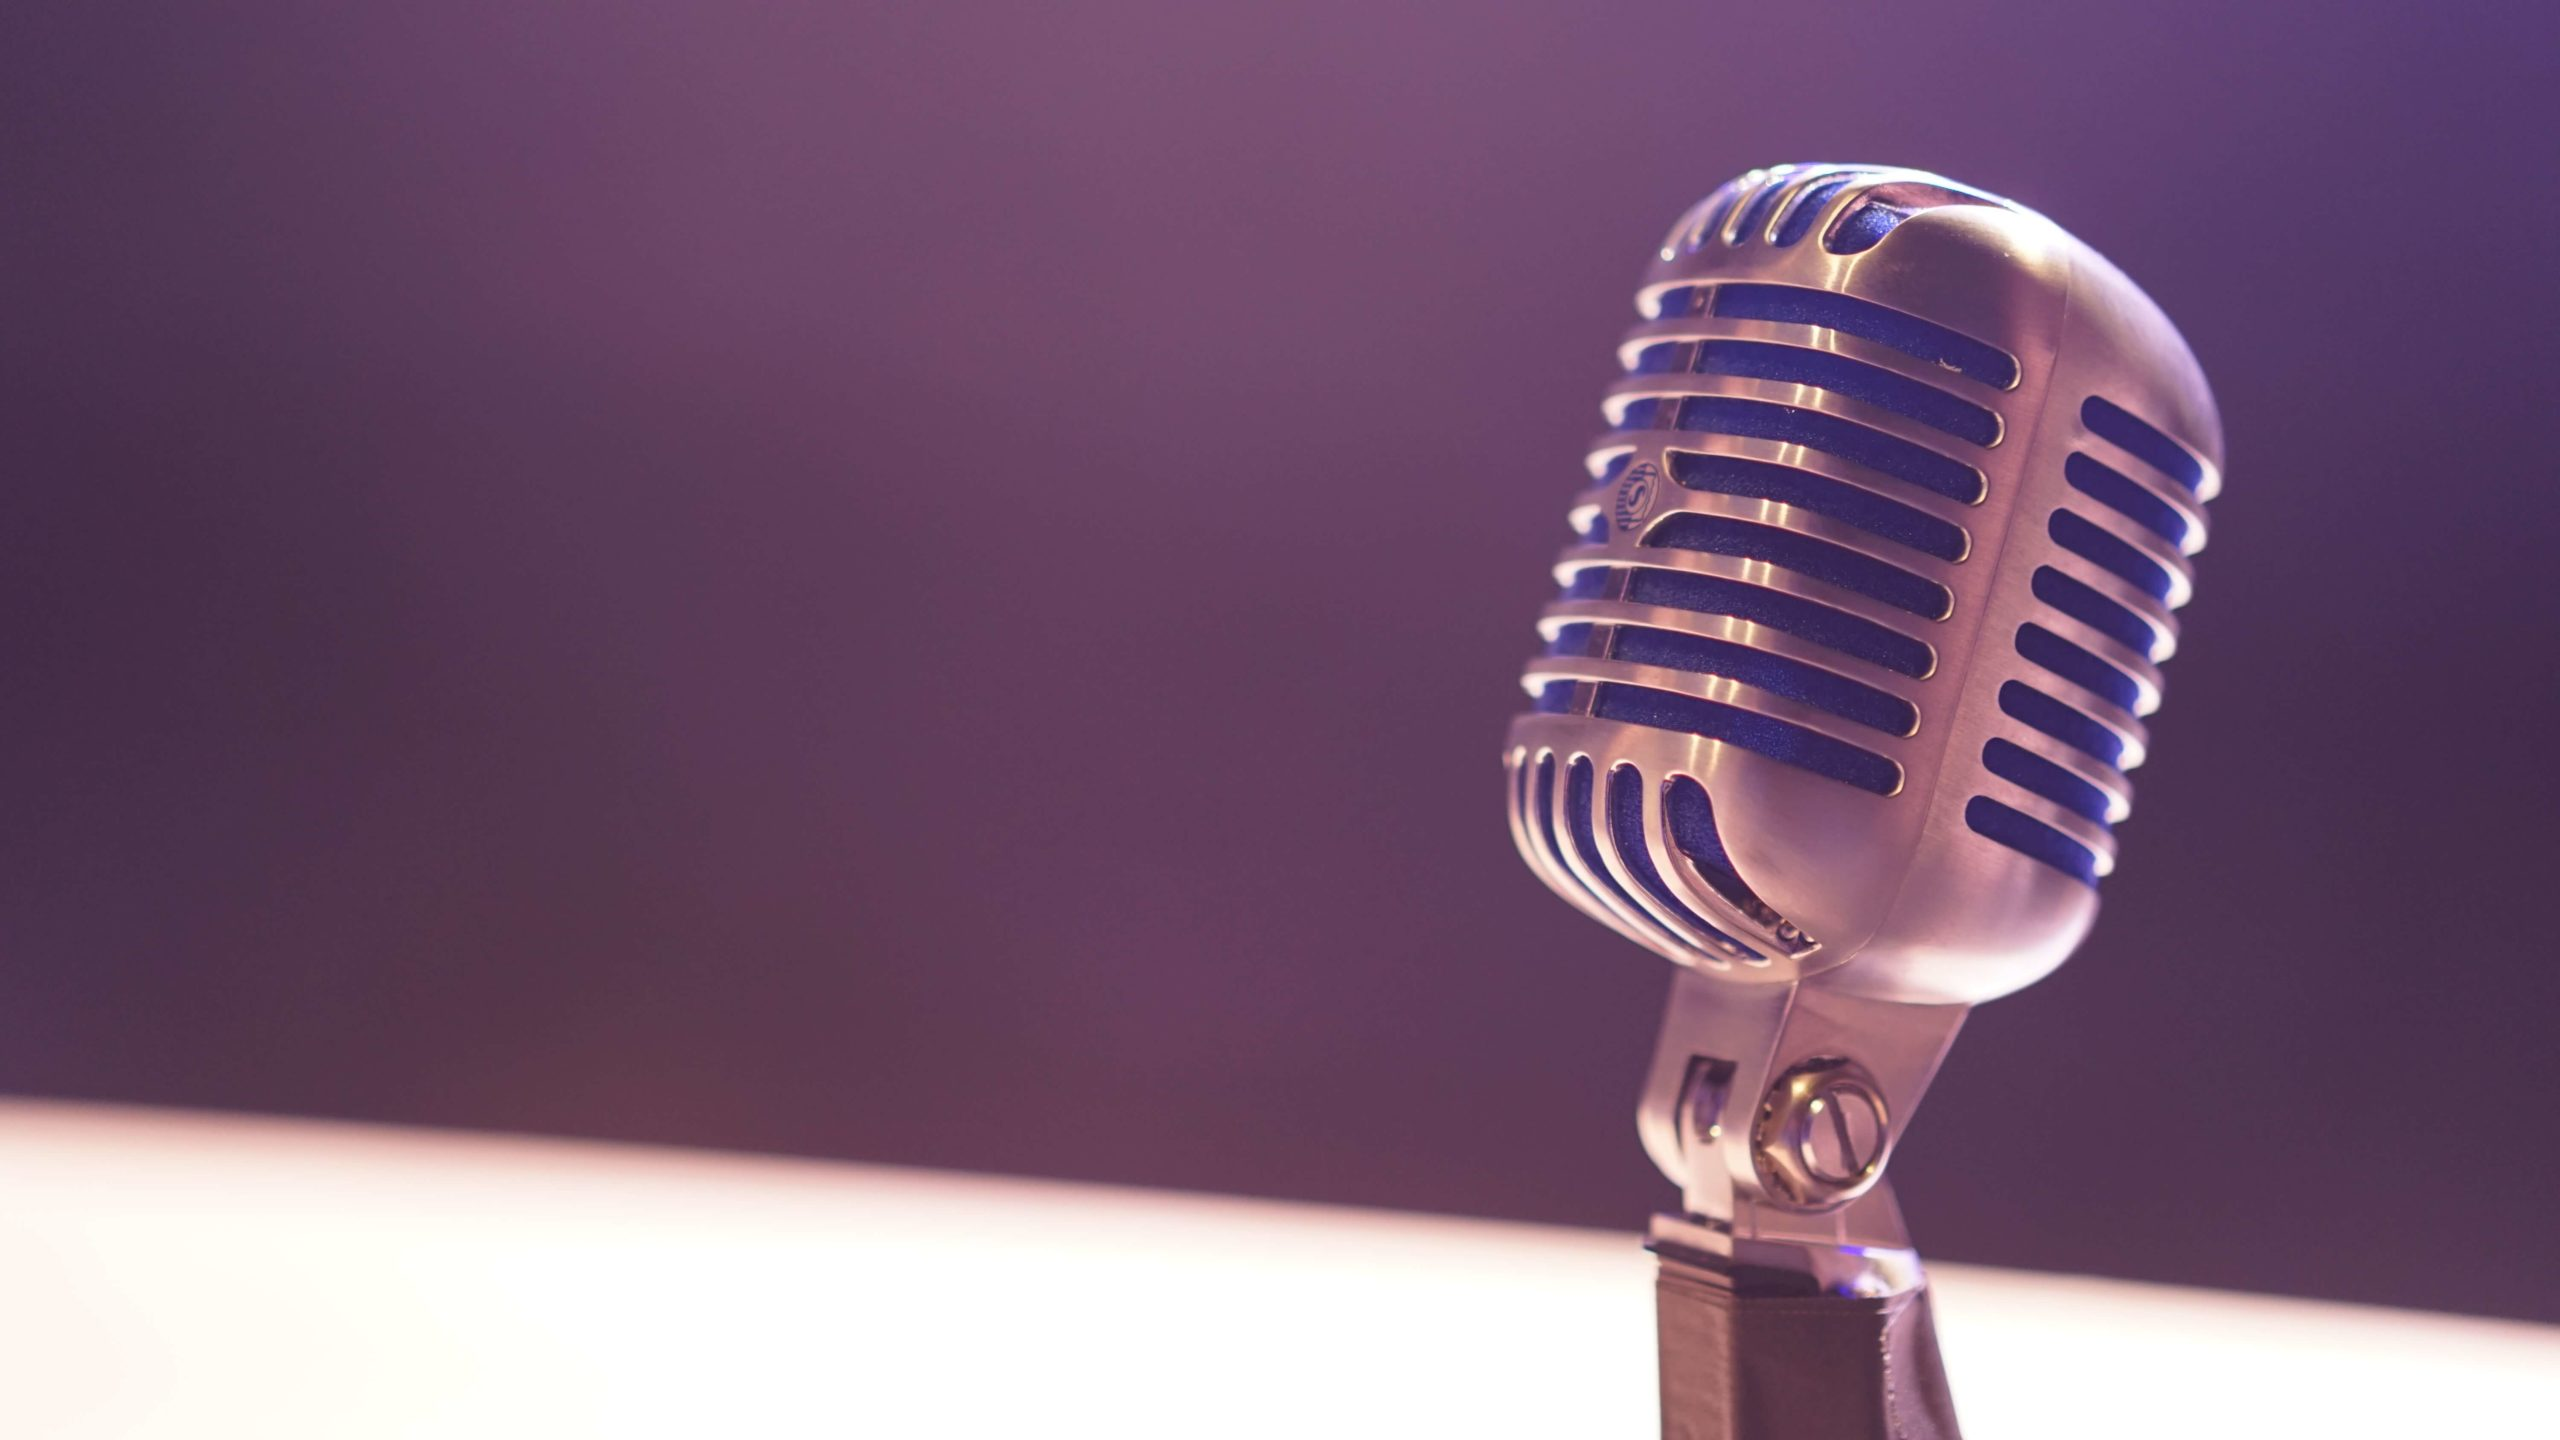 Old-fashioned microphone in front of unfocused black-and-white background Photo by Matt Botsford on Unsplash